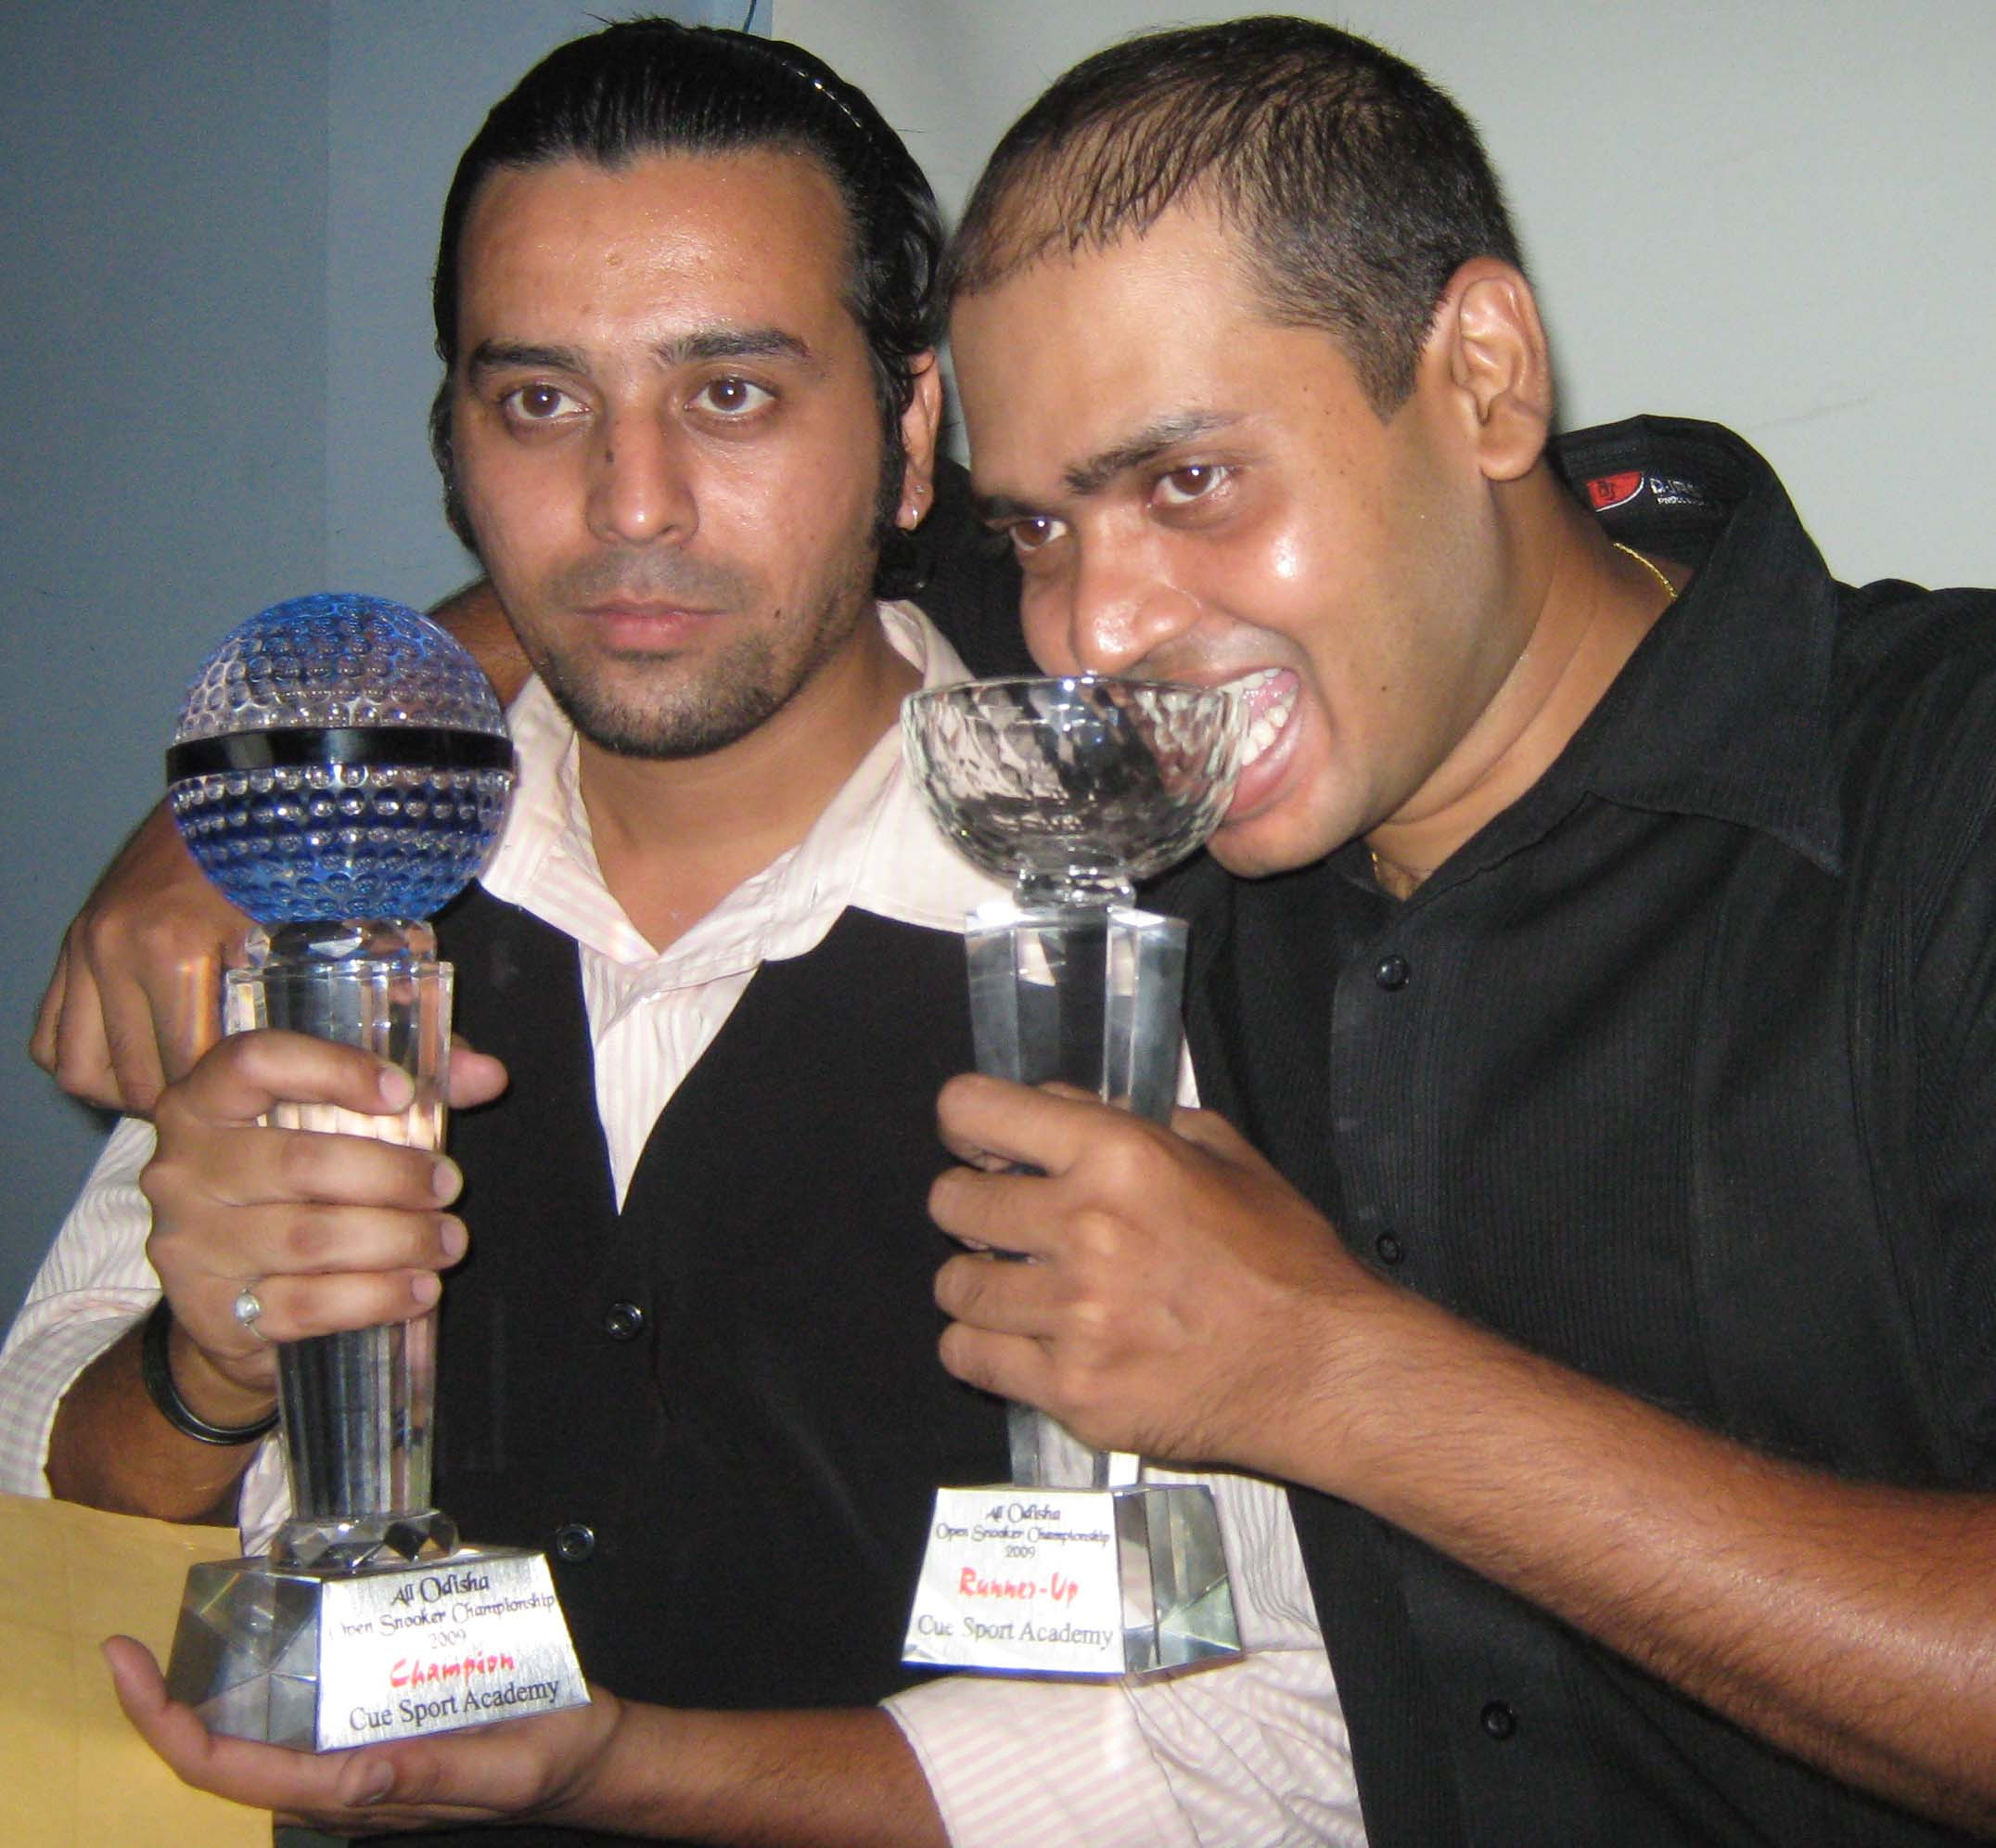 <b>Jeet Kishore Das </b>(Left) and runner-up <b>Subrat Das </b>pose with their trophies at the CSA All-Orissa Open Snooker Tournament in Bhubaneswar on April 26, 2009.